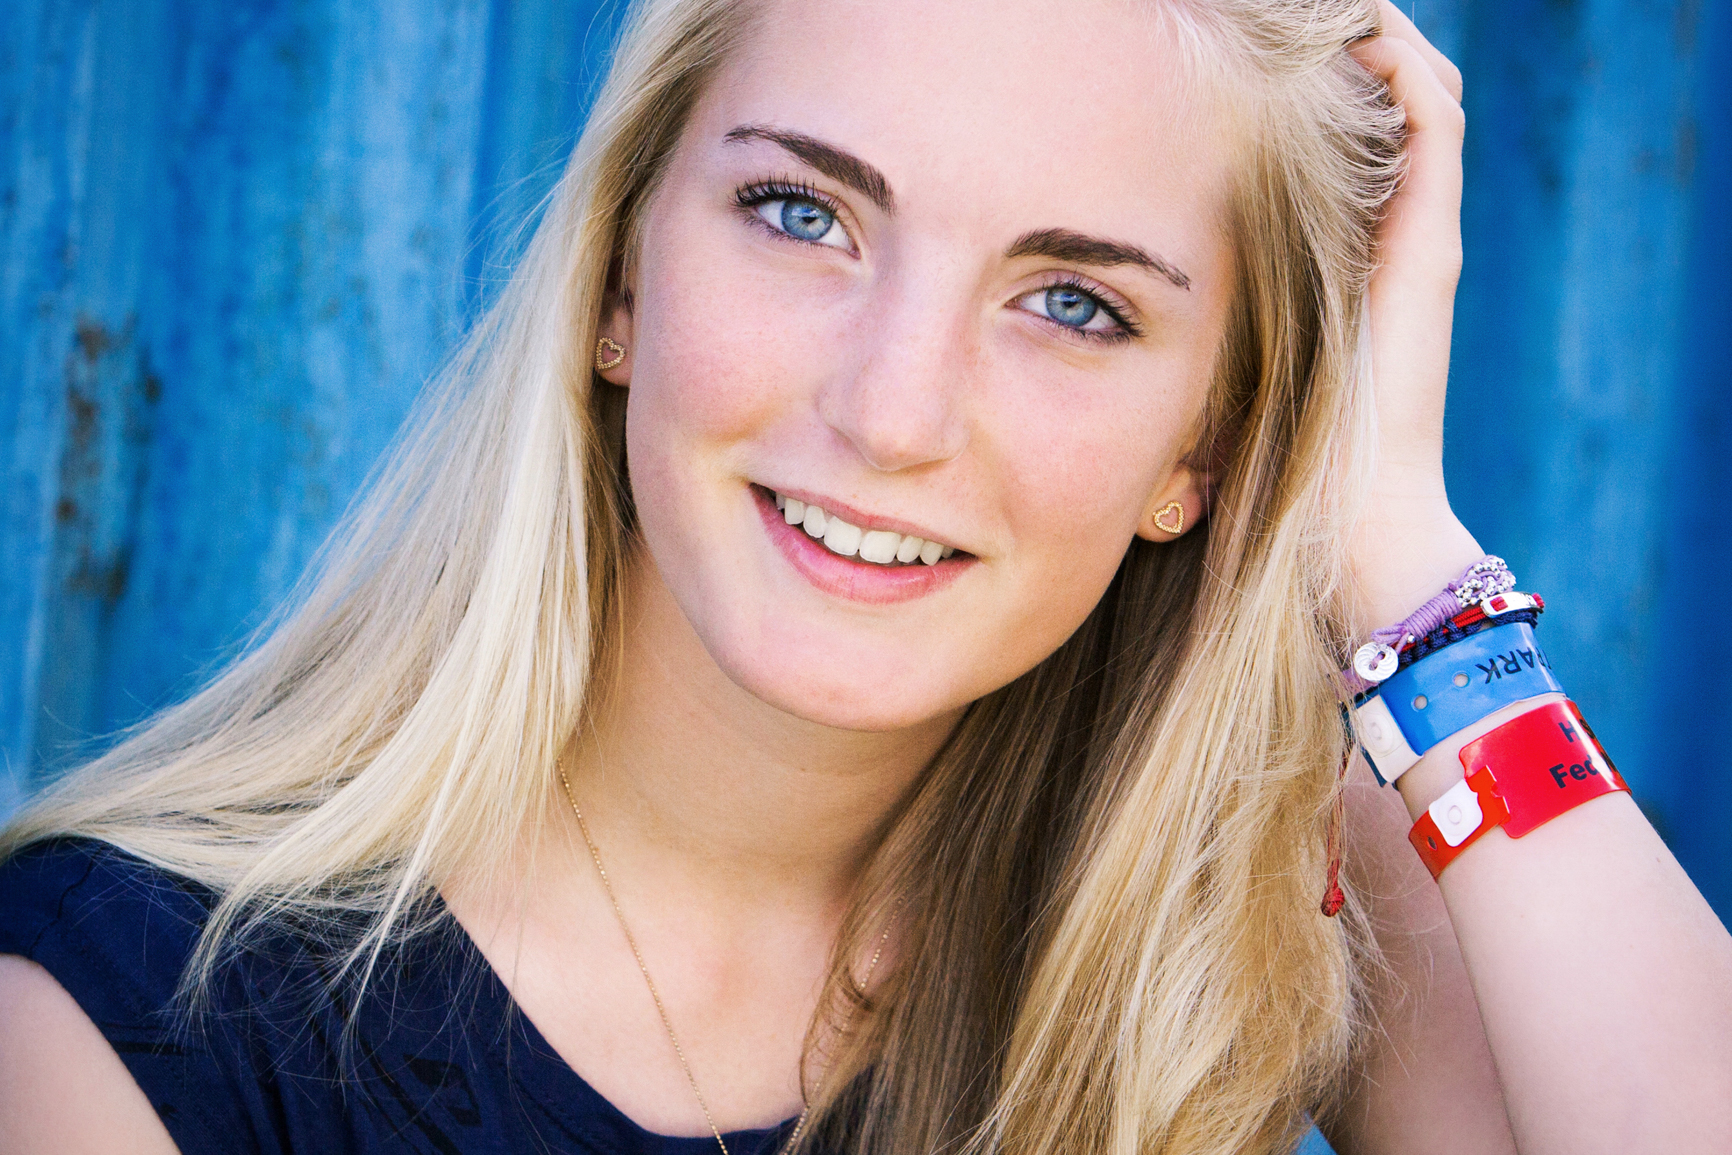 Young sportswoman with blue eyes against a blue background